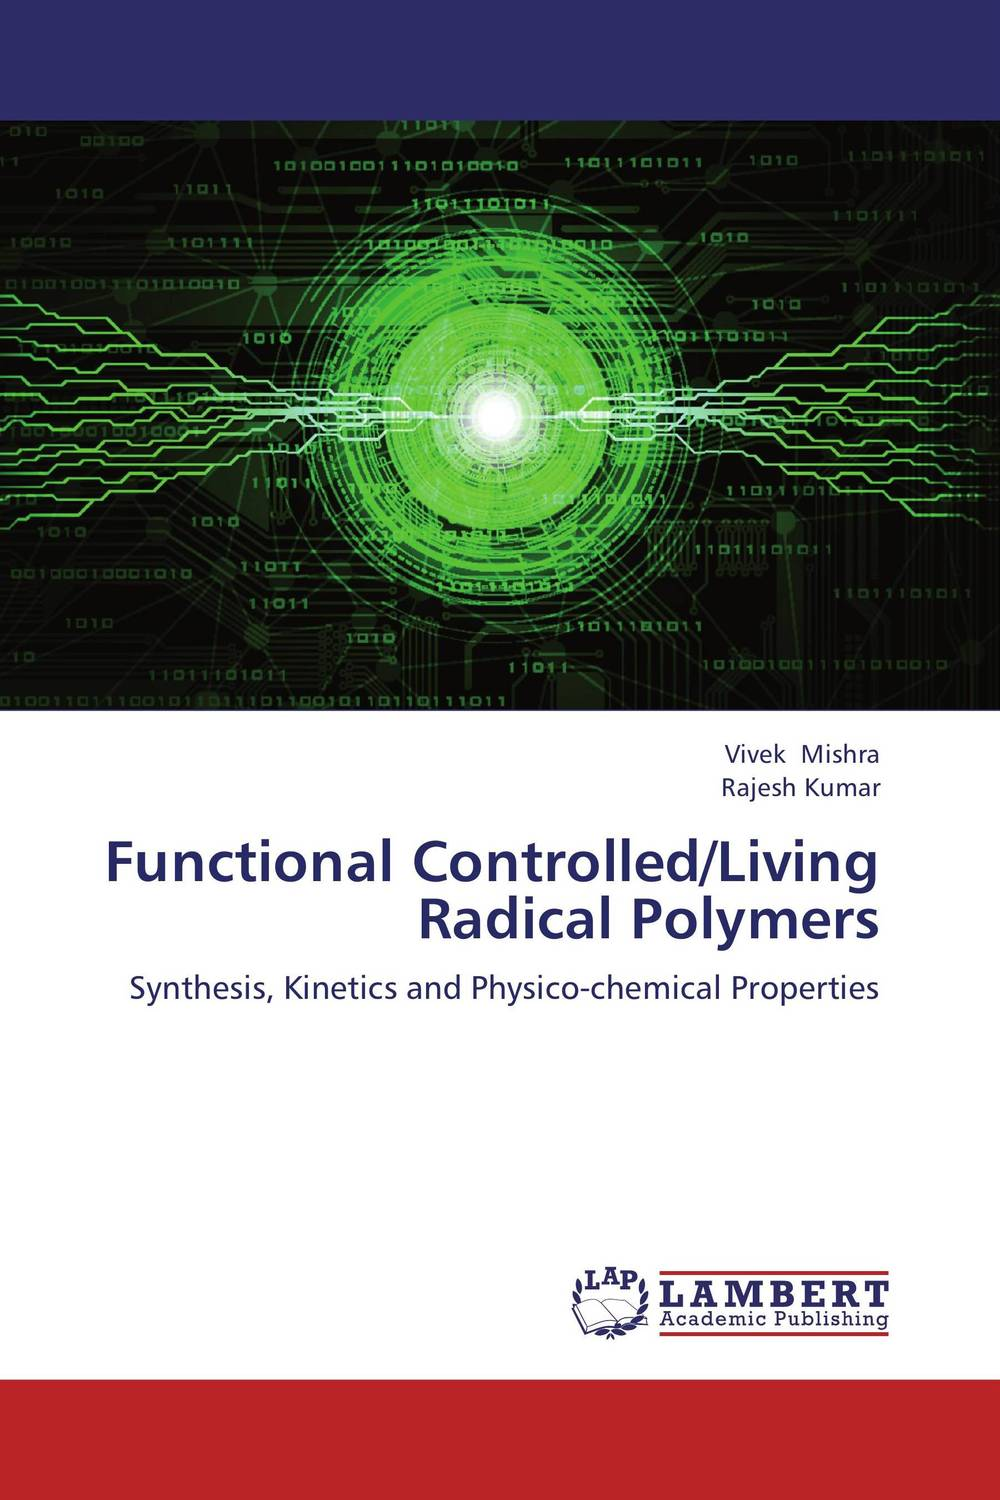 Functional Controlled/Living Radical Polymers